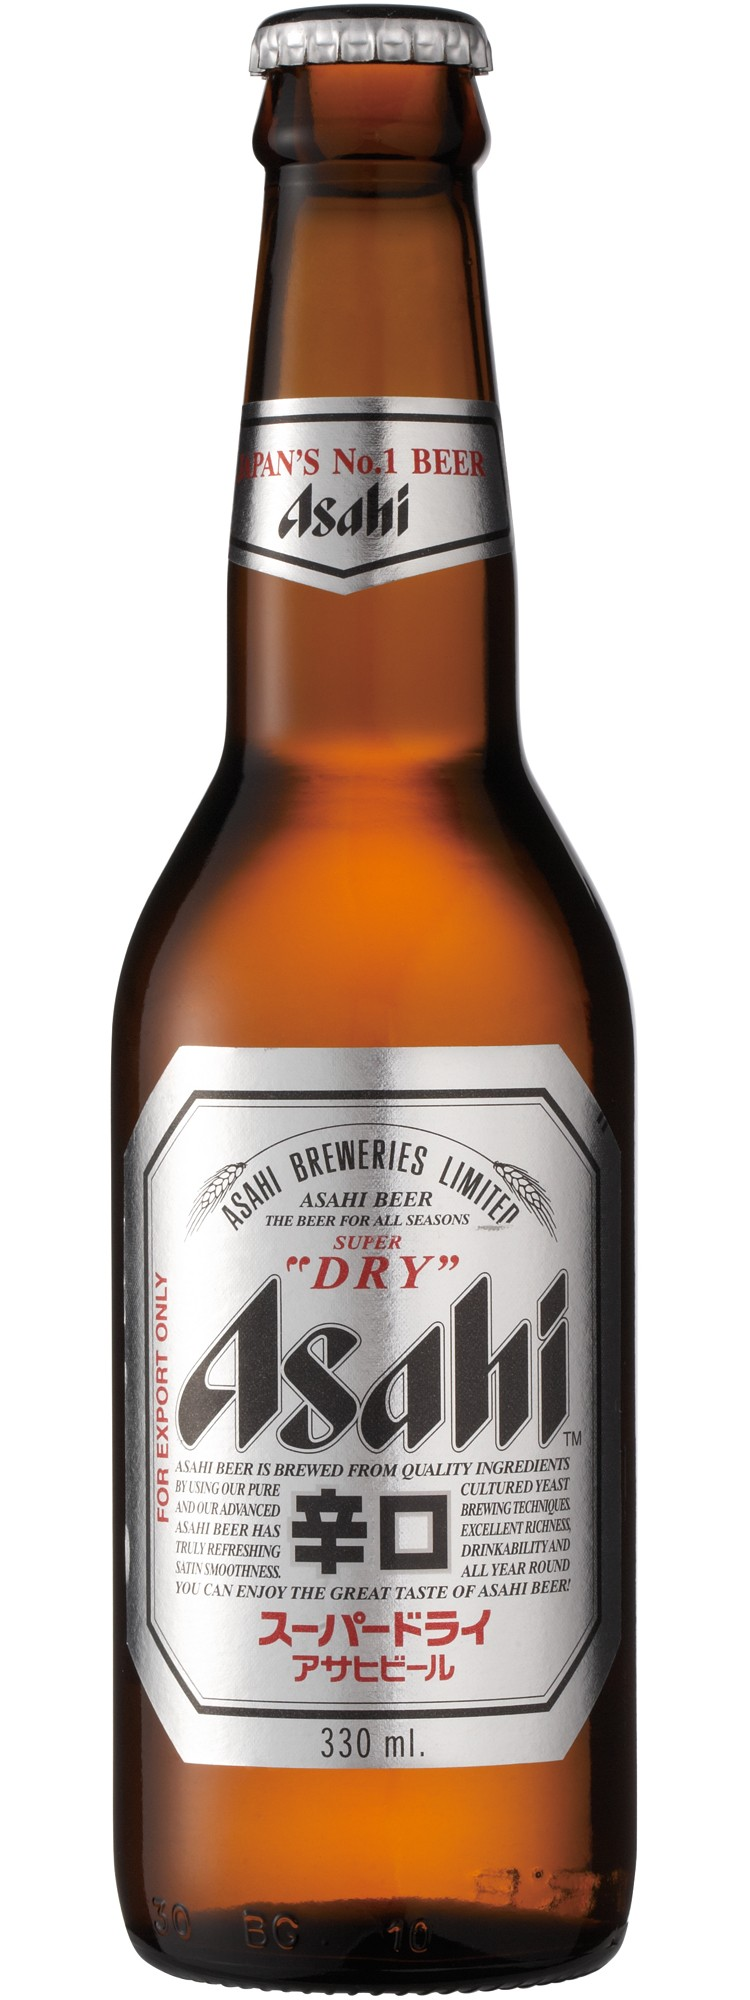 Asahi Beer Backgrounds, Compatible - PC, Mobile, Gadgets  750x2000 px